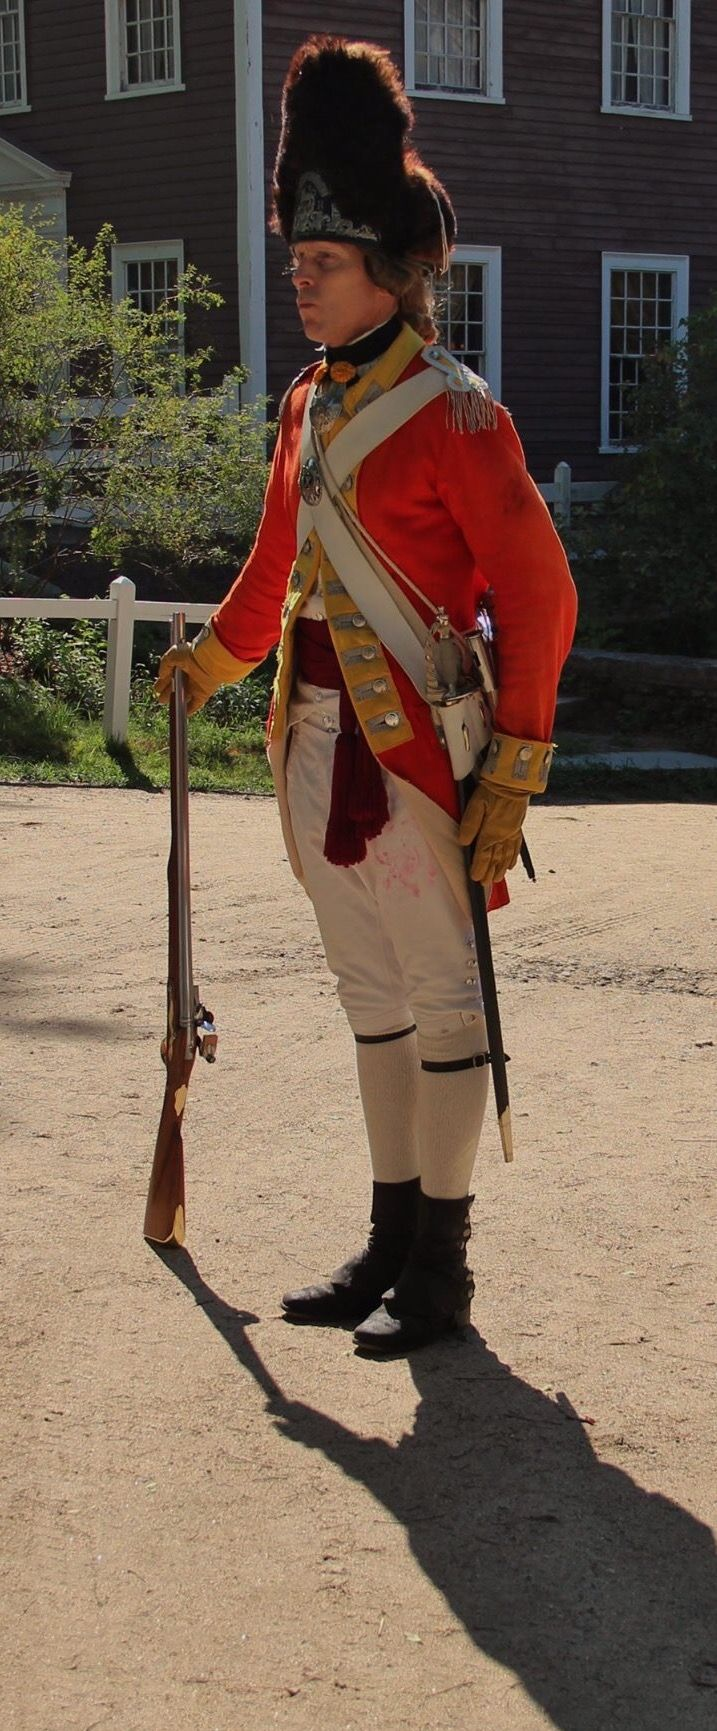 Officer, Royal Welch Fusiliers armed with a short rifle